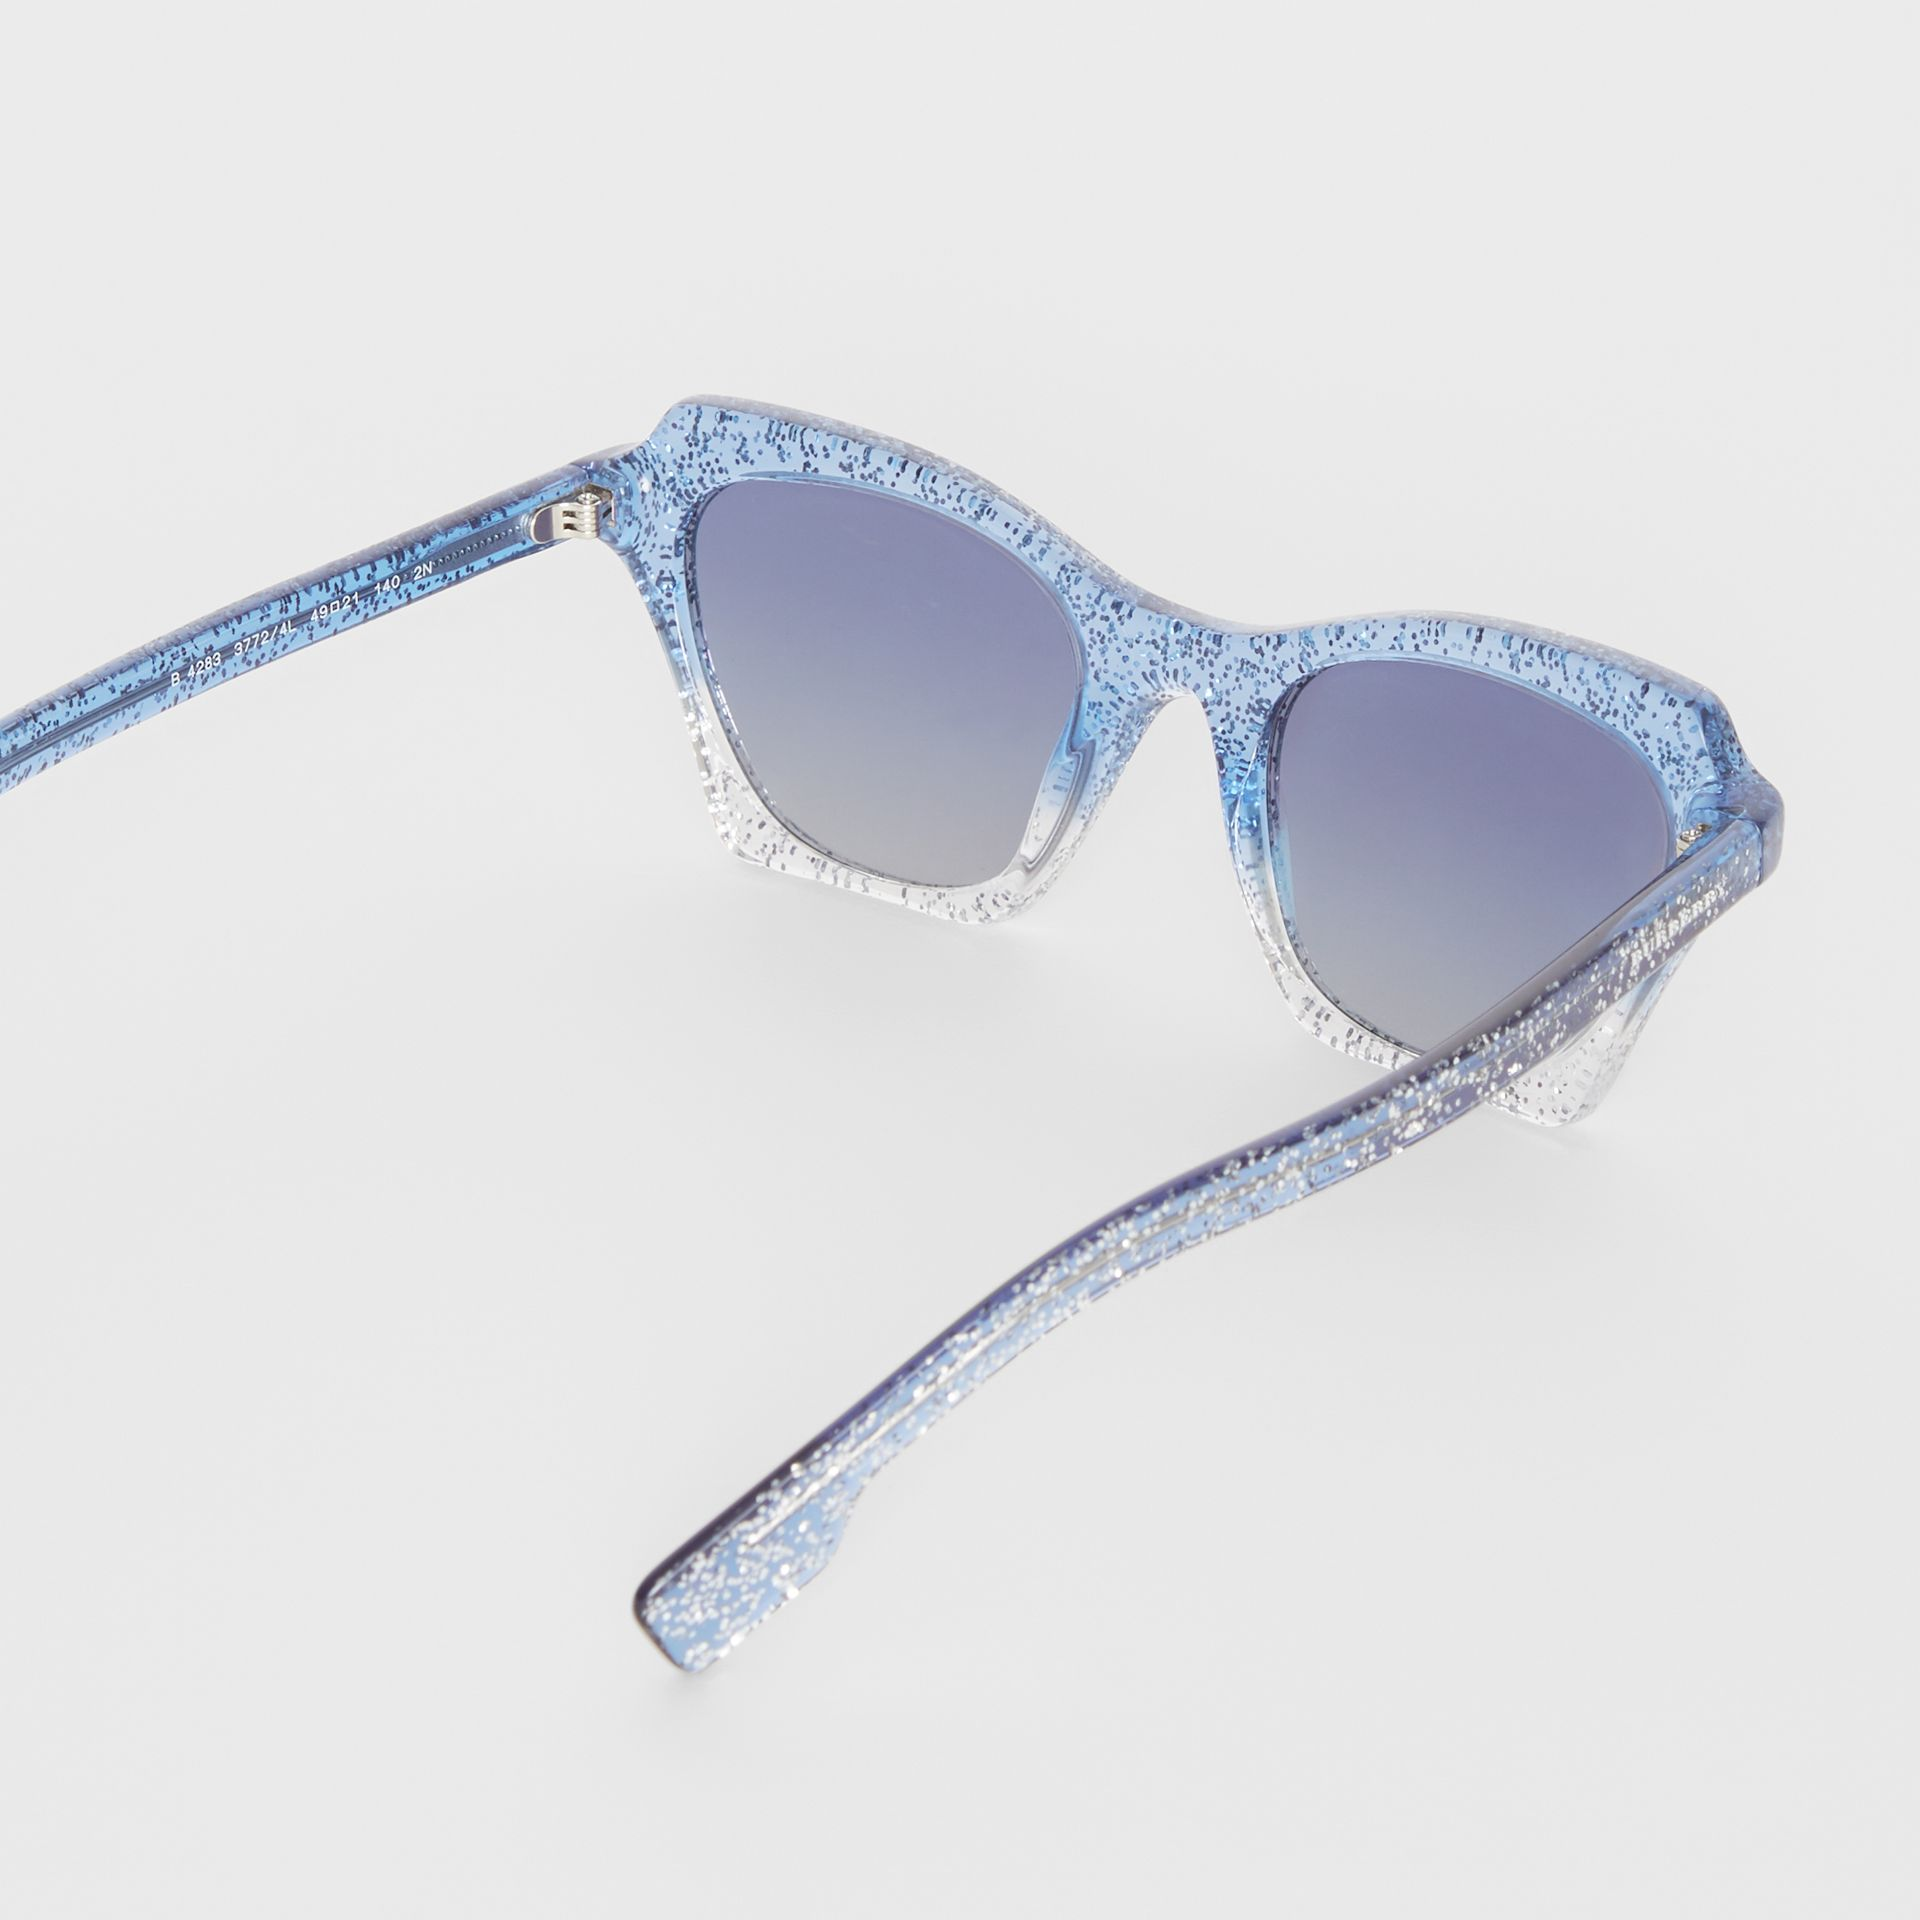 Butterfly Frame Sunglasses in Blue - Women | Burberry Singapore - gallery image 4